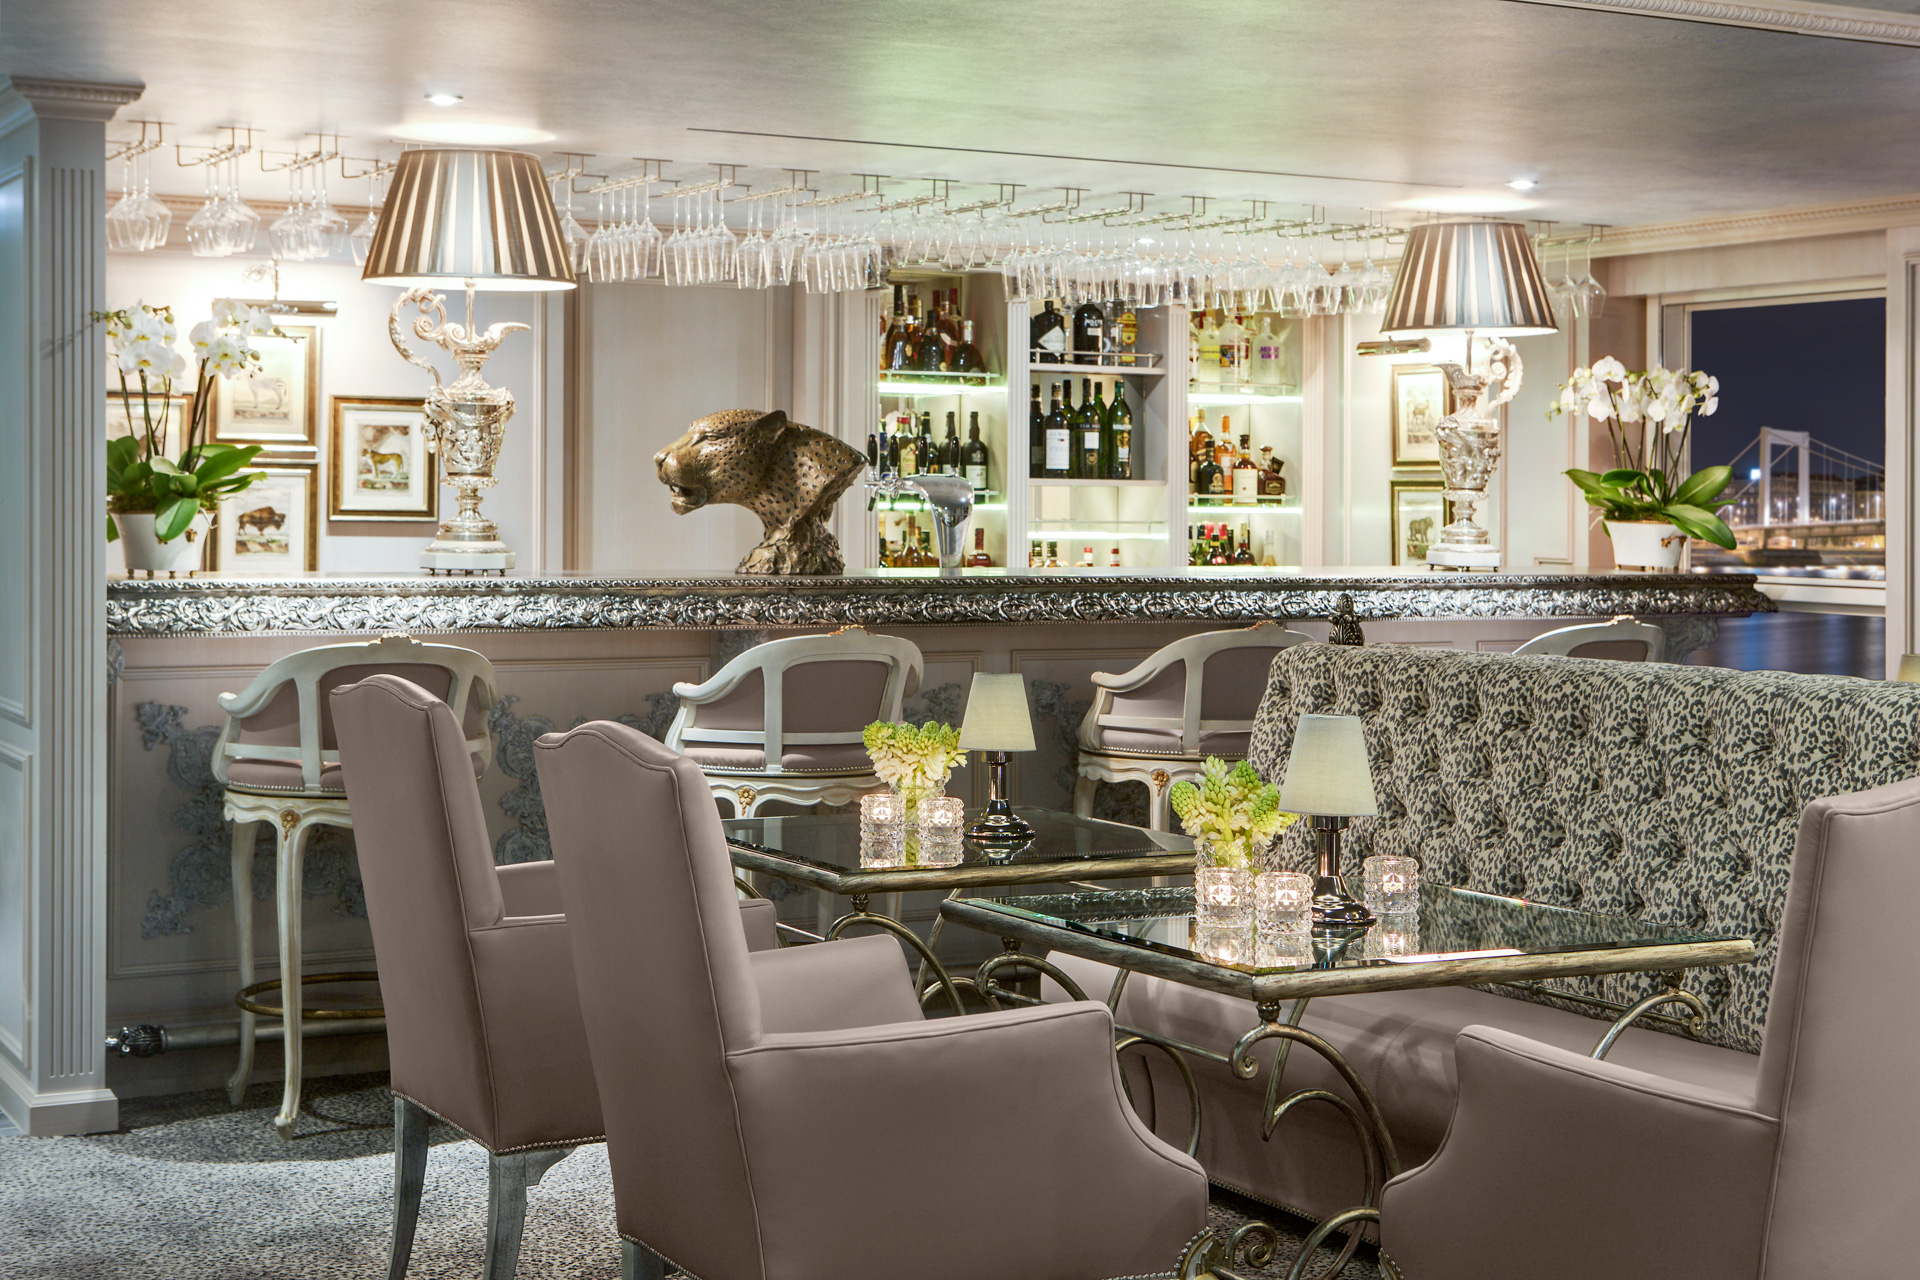 This image: The glamorous Bar de Leopard located at the stern of the ship offers full-service, but lighter lunch options.